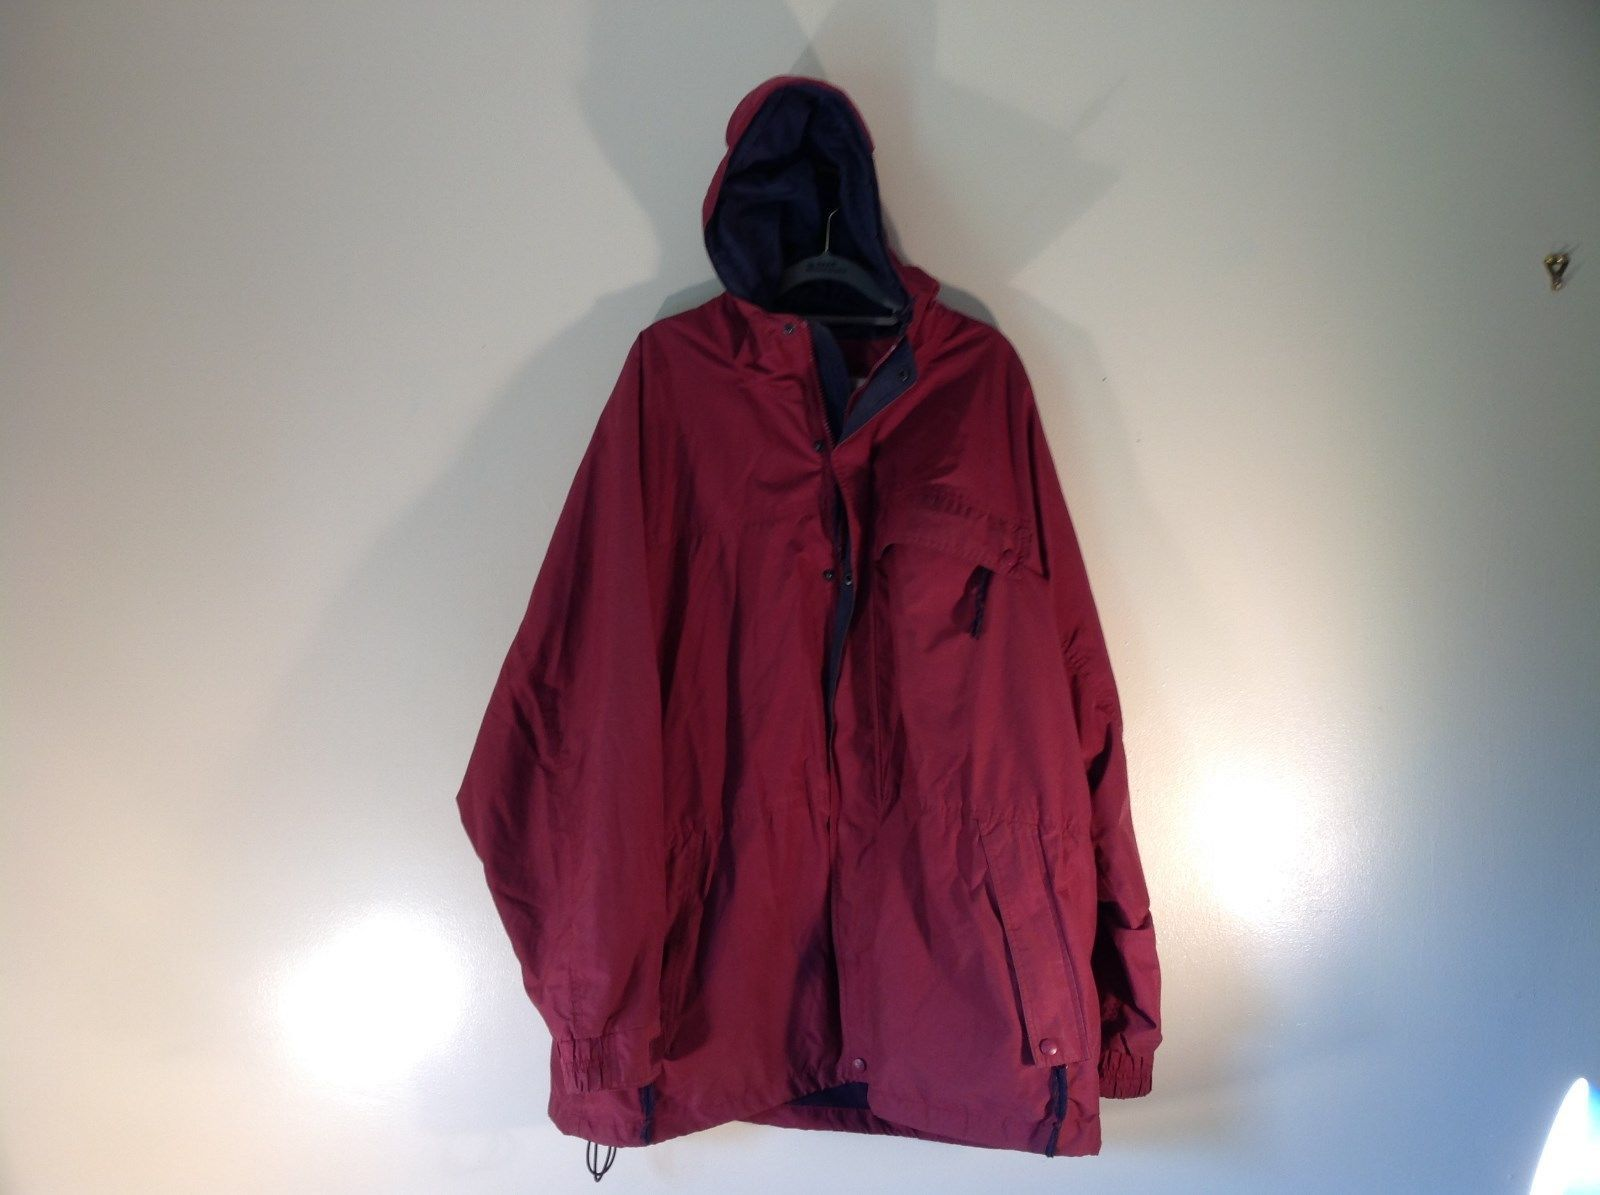 EMS Burgundy Zipper Closure Hood Hiking Camping Jacket Size XL 3 Front Pockets